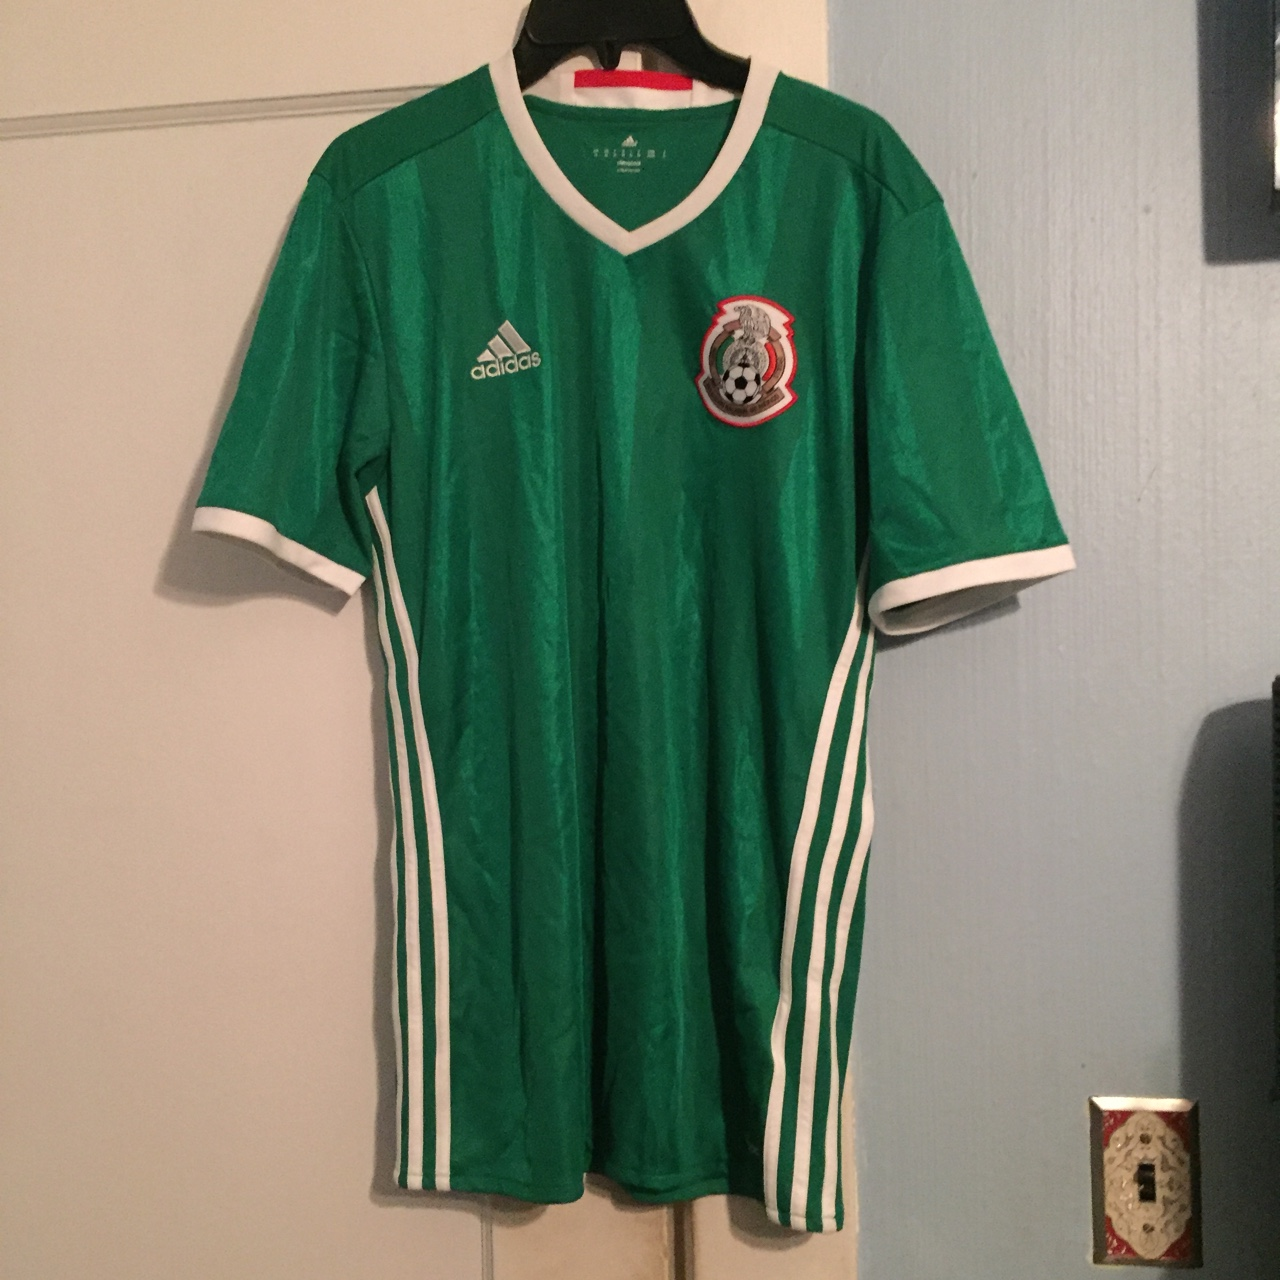 buy popular db8fb f8eaf Adidas Mexico jersey 2016 authentic, bought at... - Depop